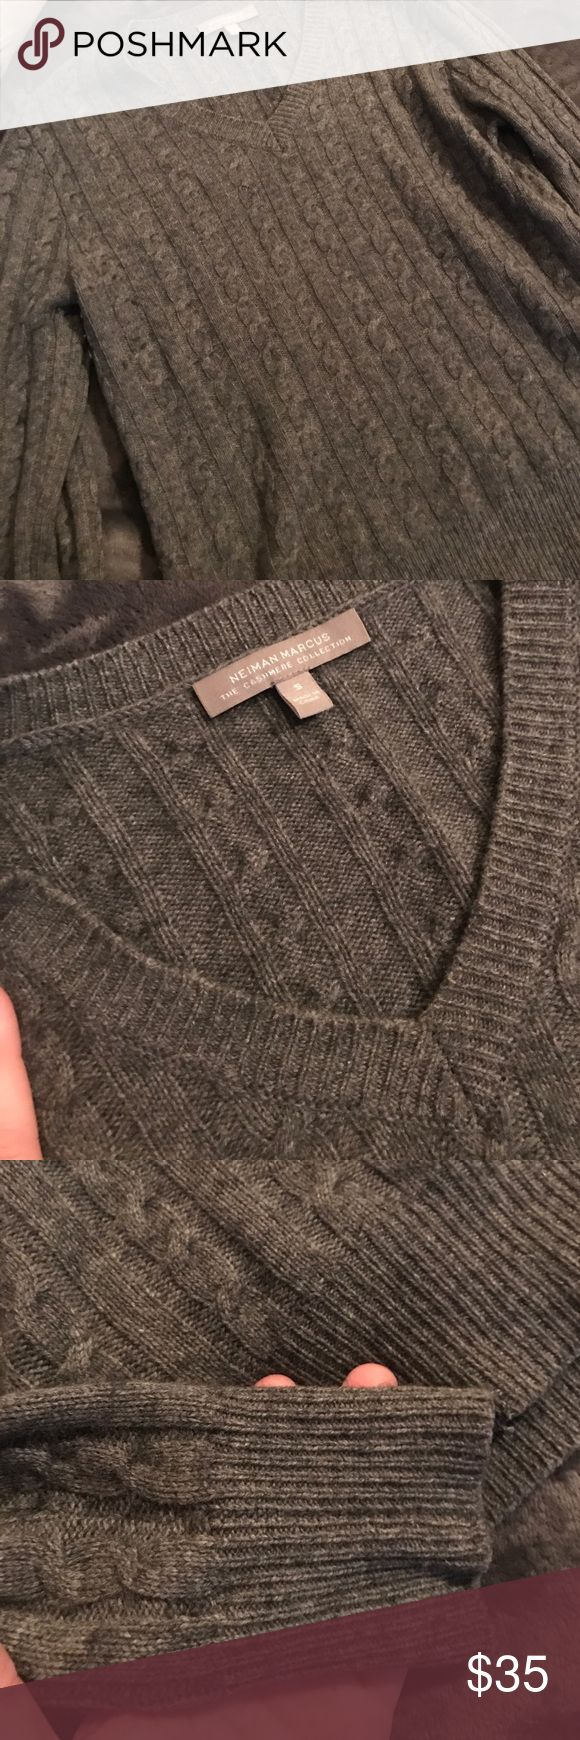 Neman Marcus Cashmere Sweater So soft! Lightly worn 💯% cashmere sweater in gray. Open to offers Neiman Marcus Sweaters V-Necks